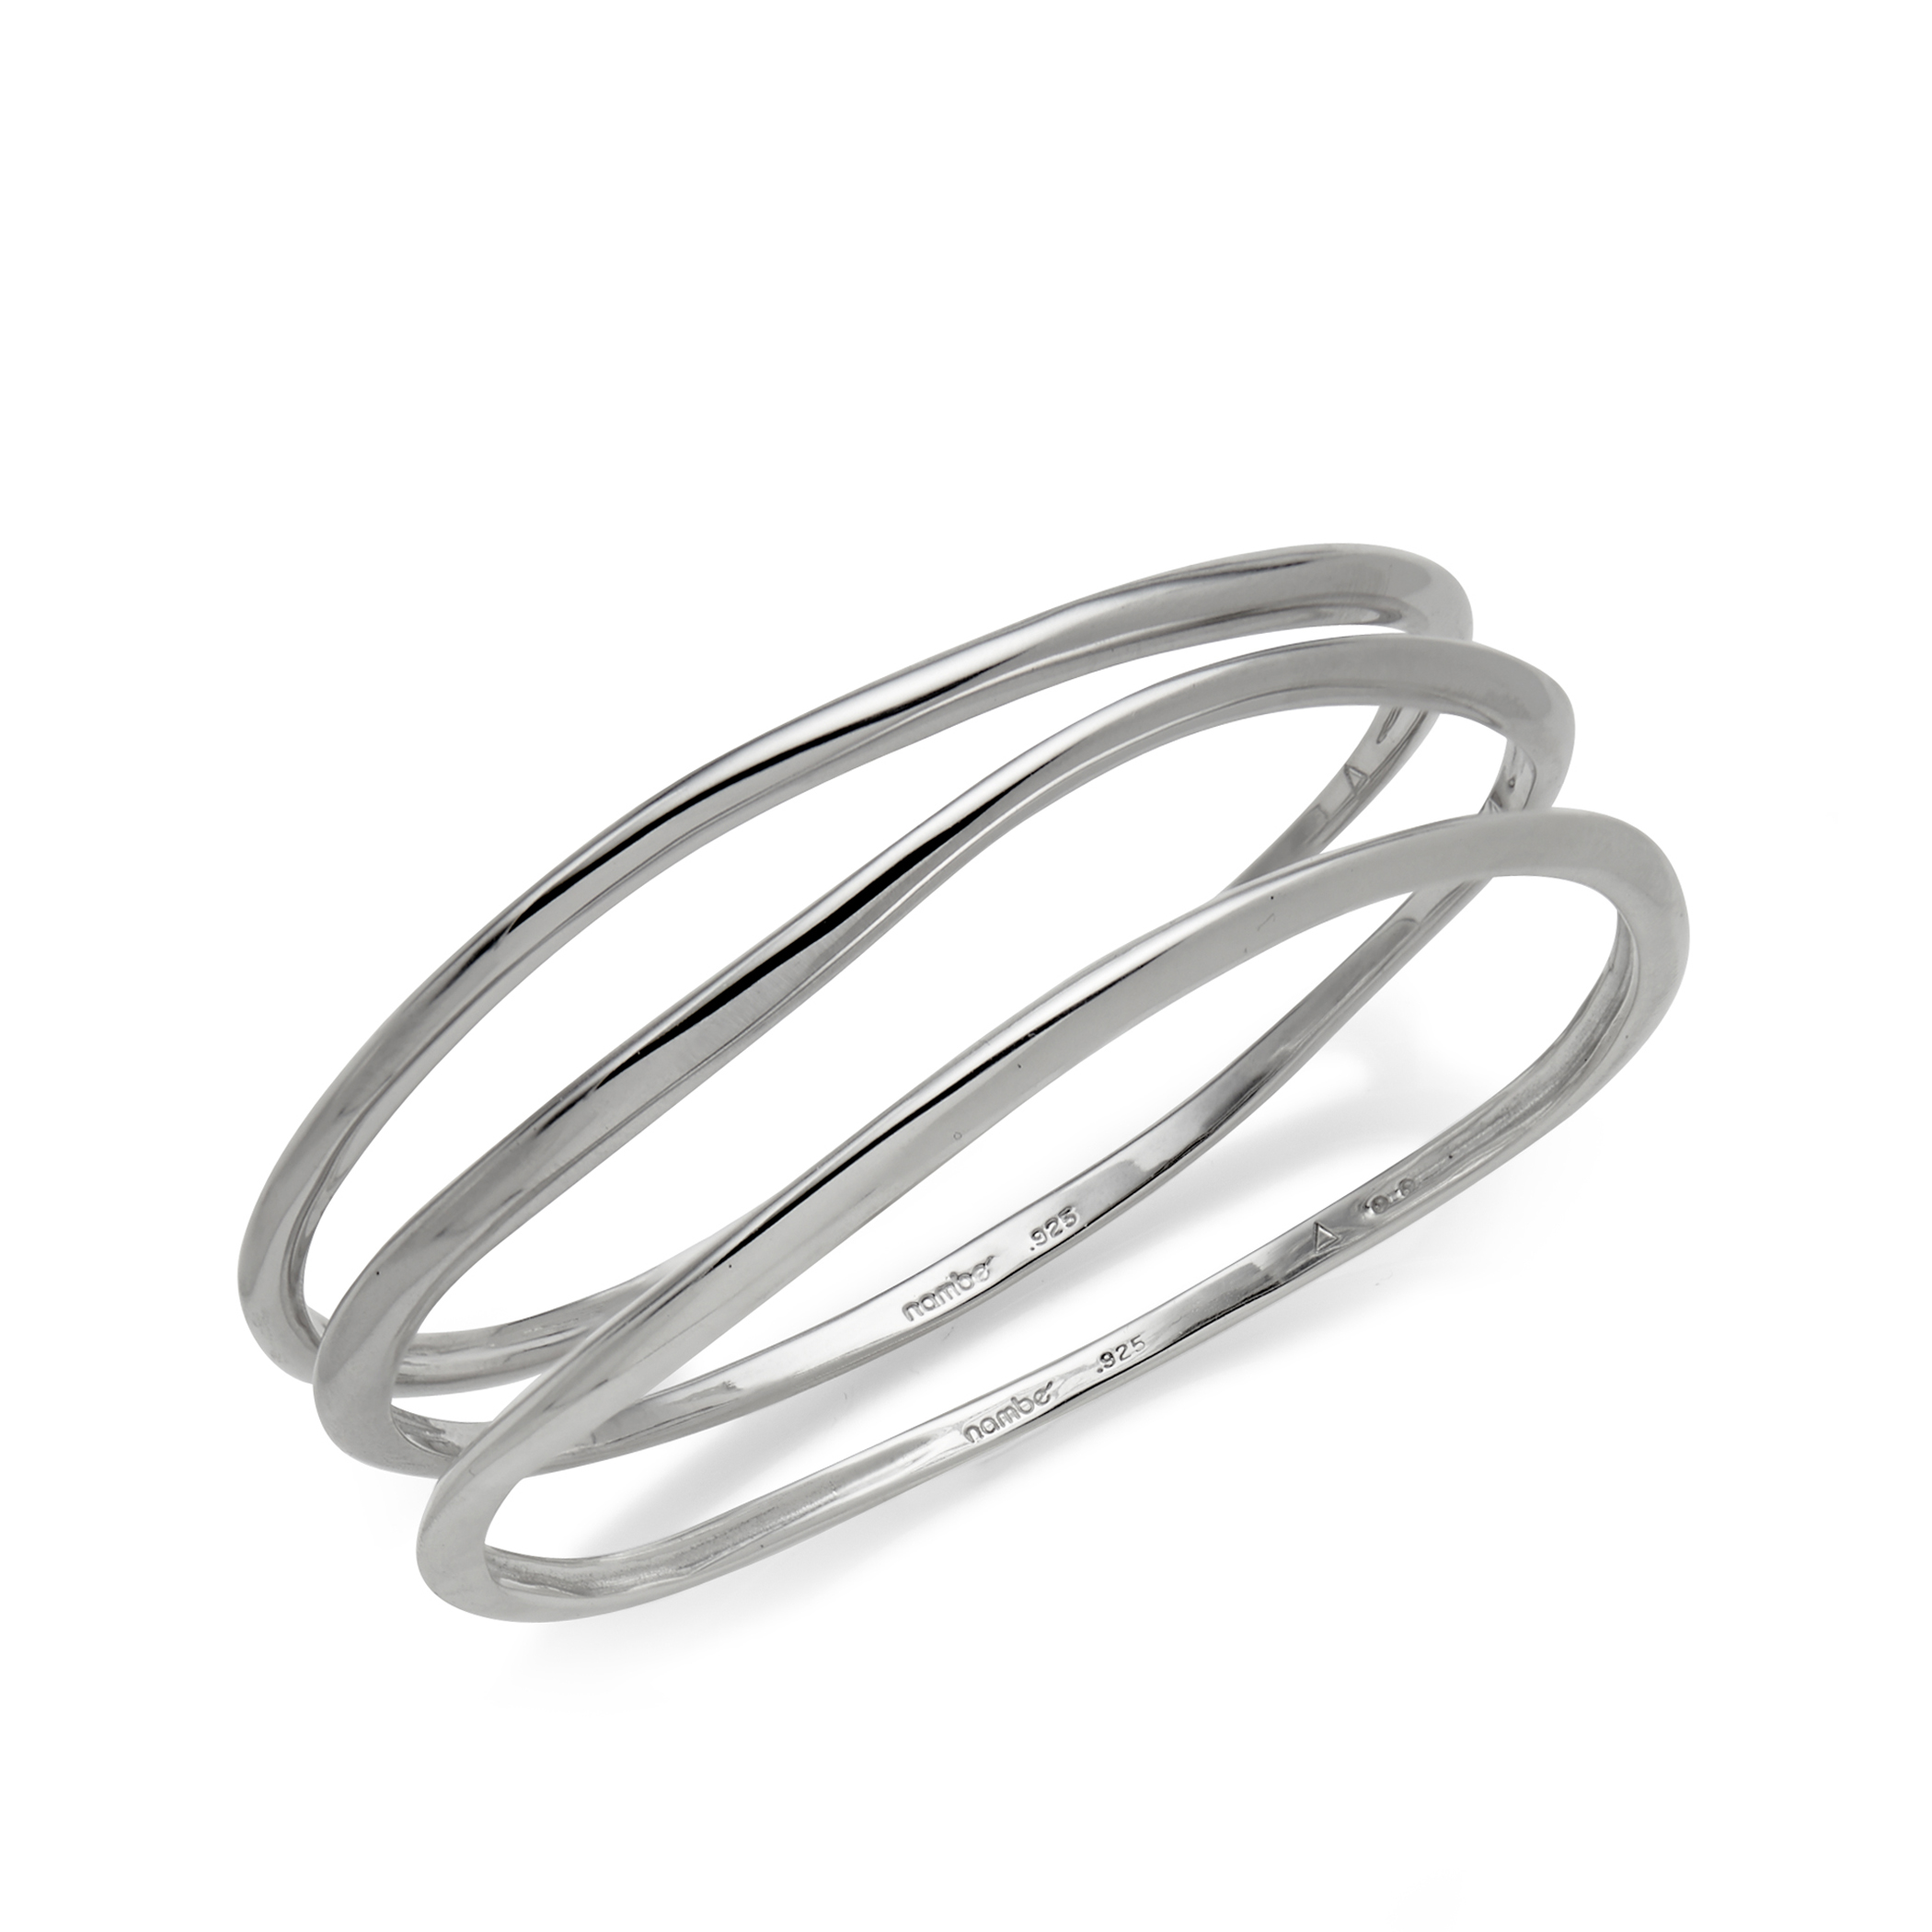 Signature Bangle Bracelets (Set of 3) image number 0